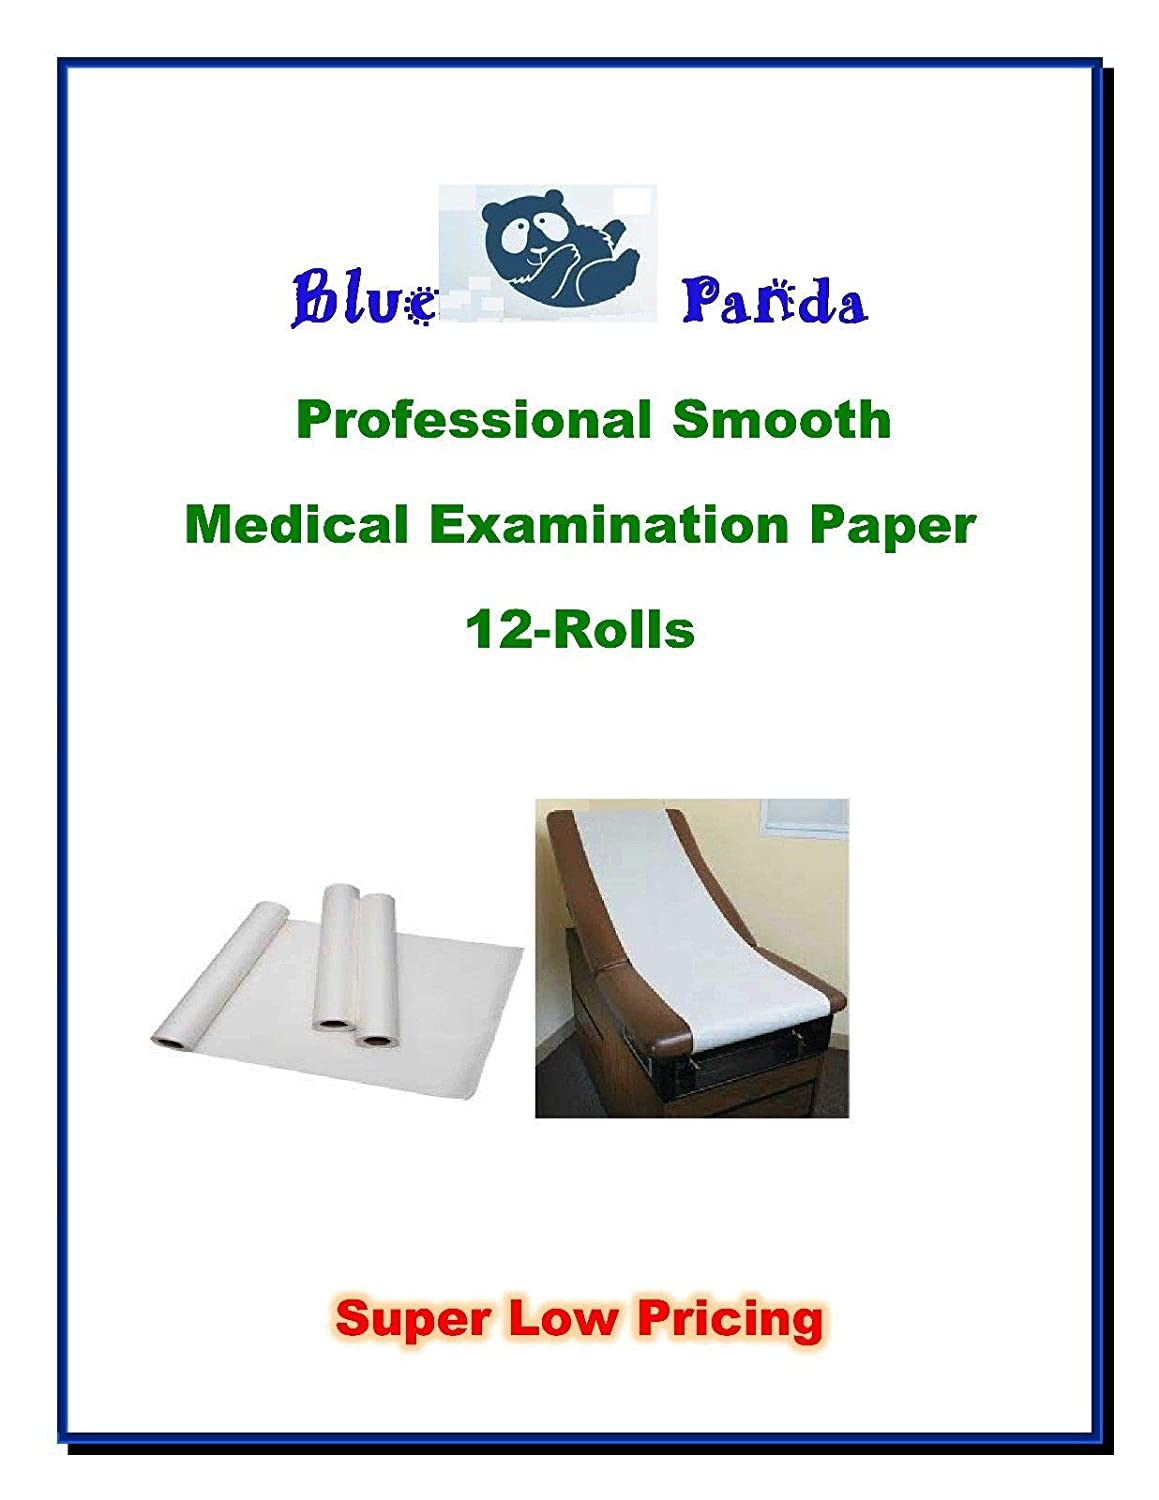 Blue Panda Examination Table New product Mail order cheap type 21